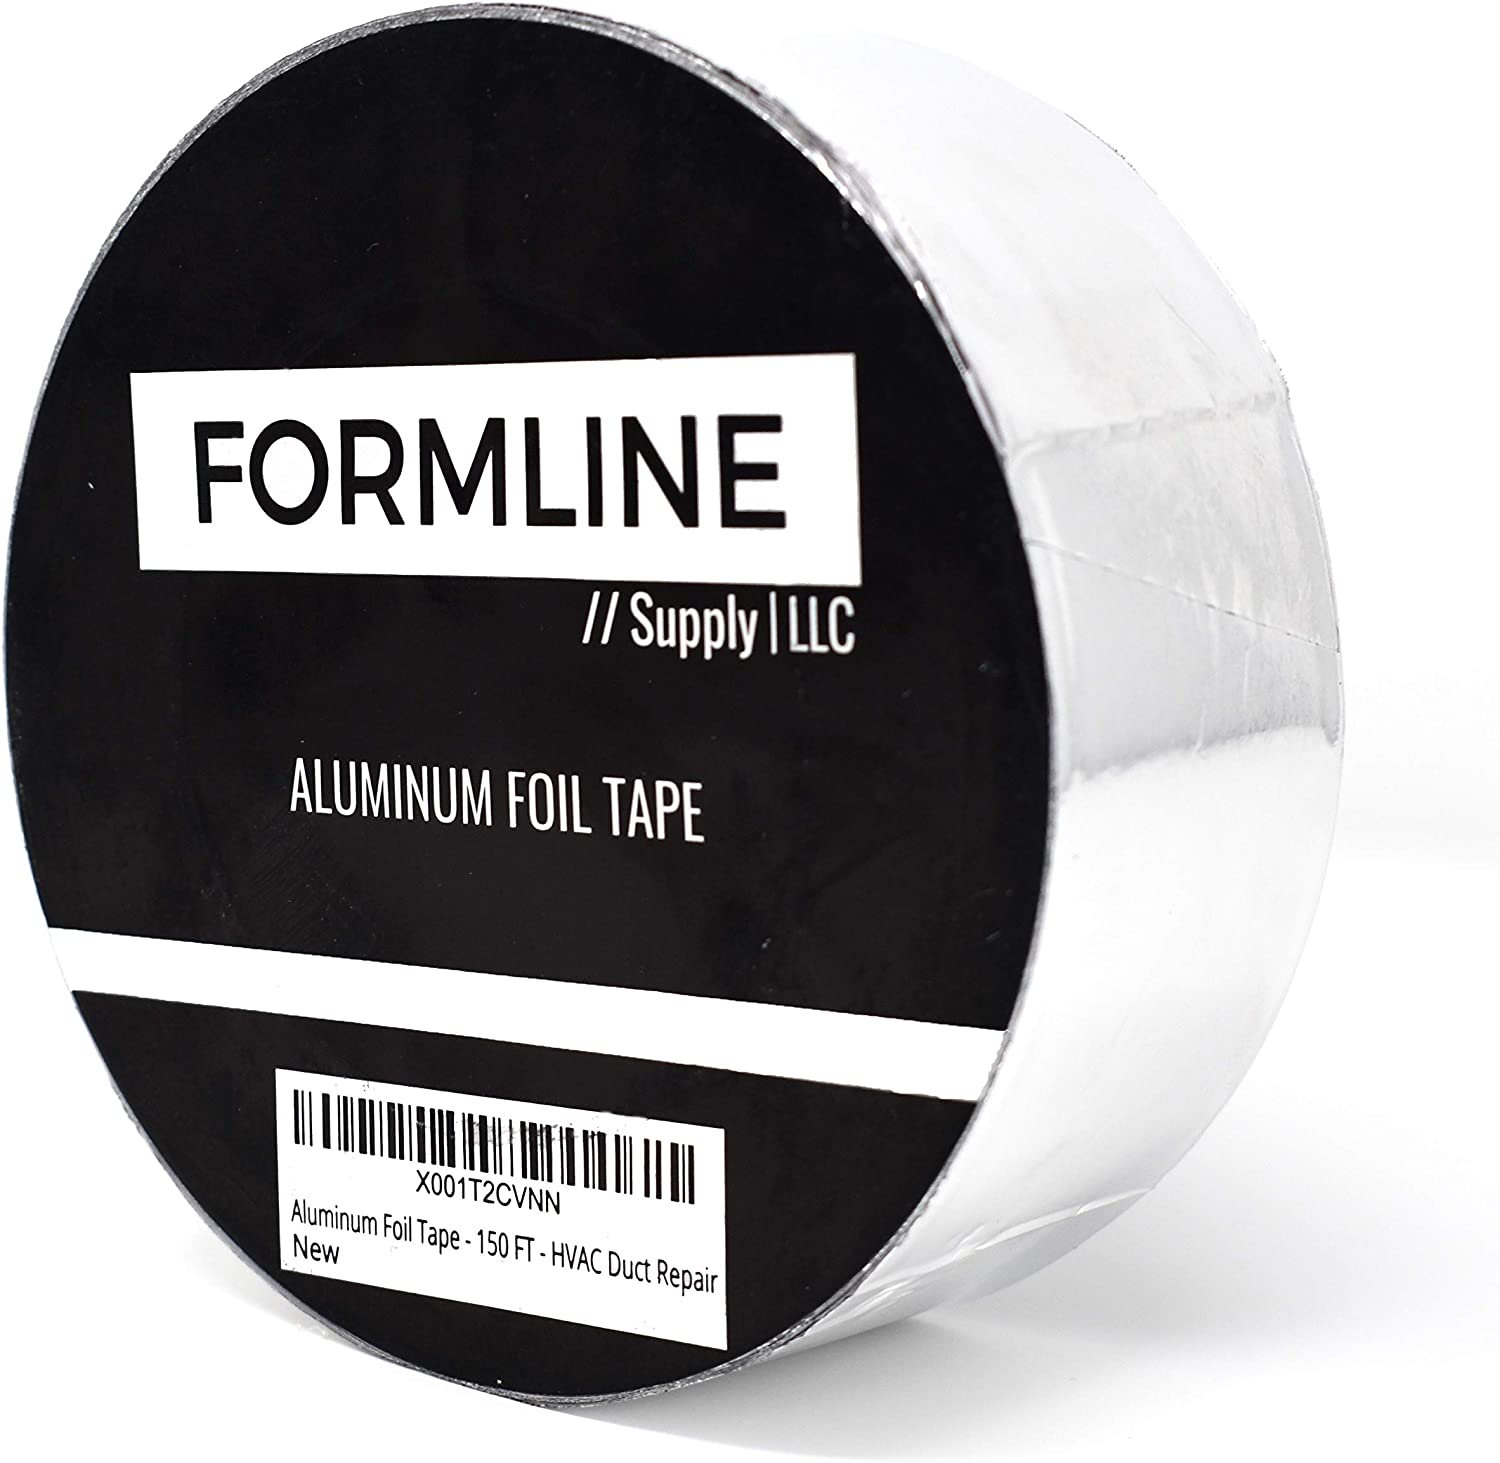 Aluminum Foil Tape - (2 Inch by 150 FT) - Heat Resistant Aluminum Insulation Tape Great for Duct Repair, HVAC and More